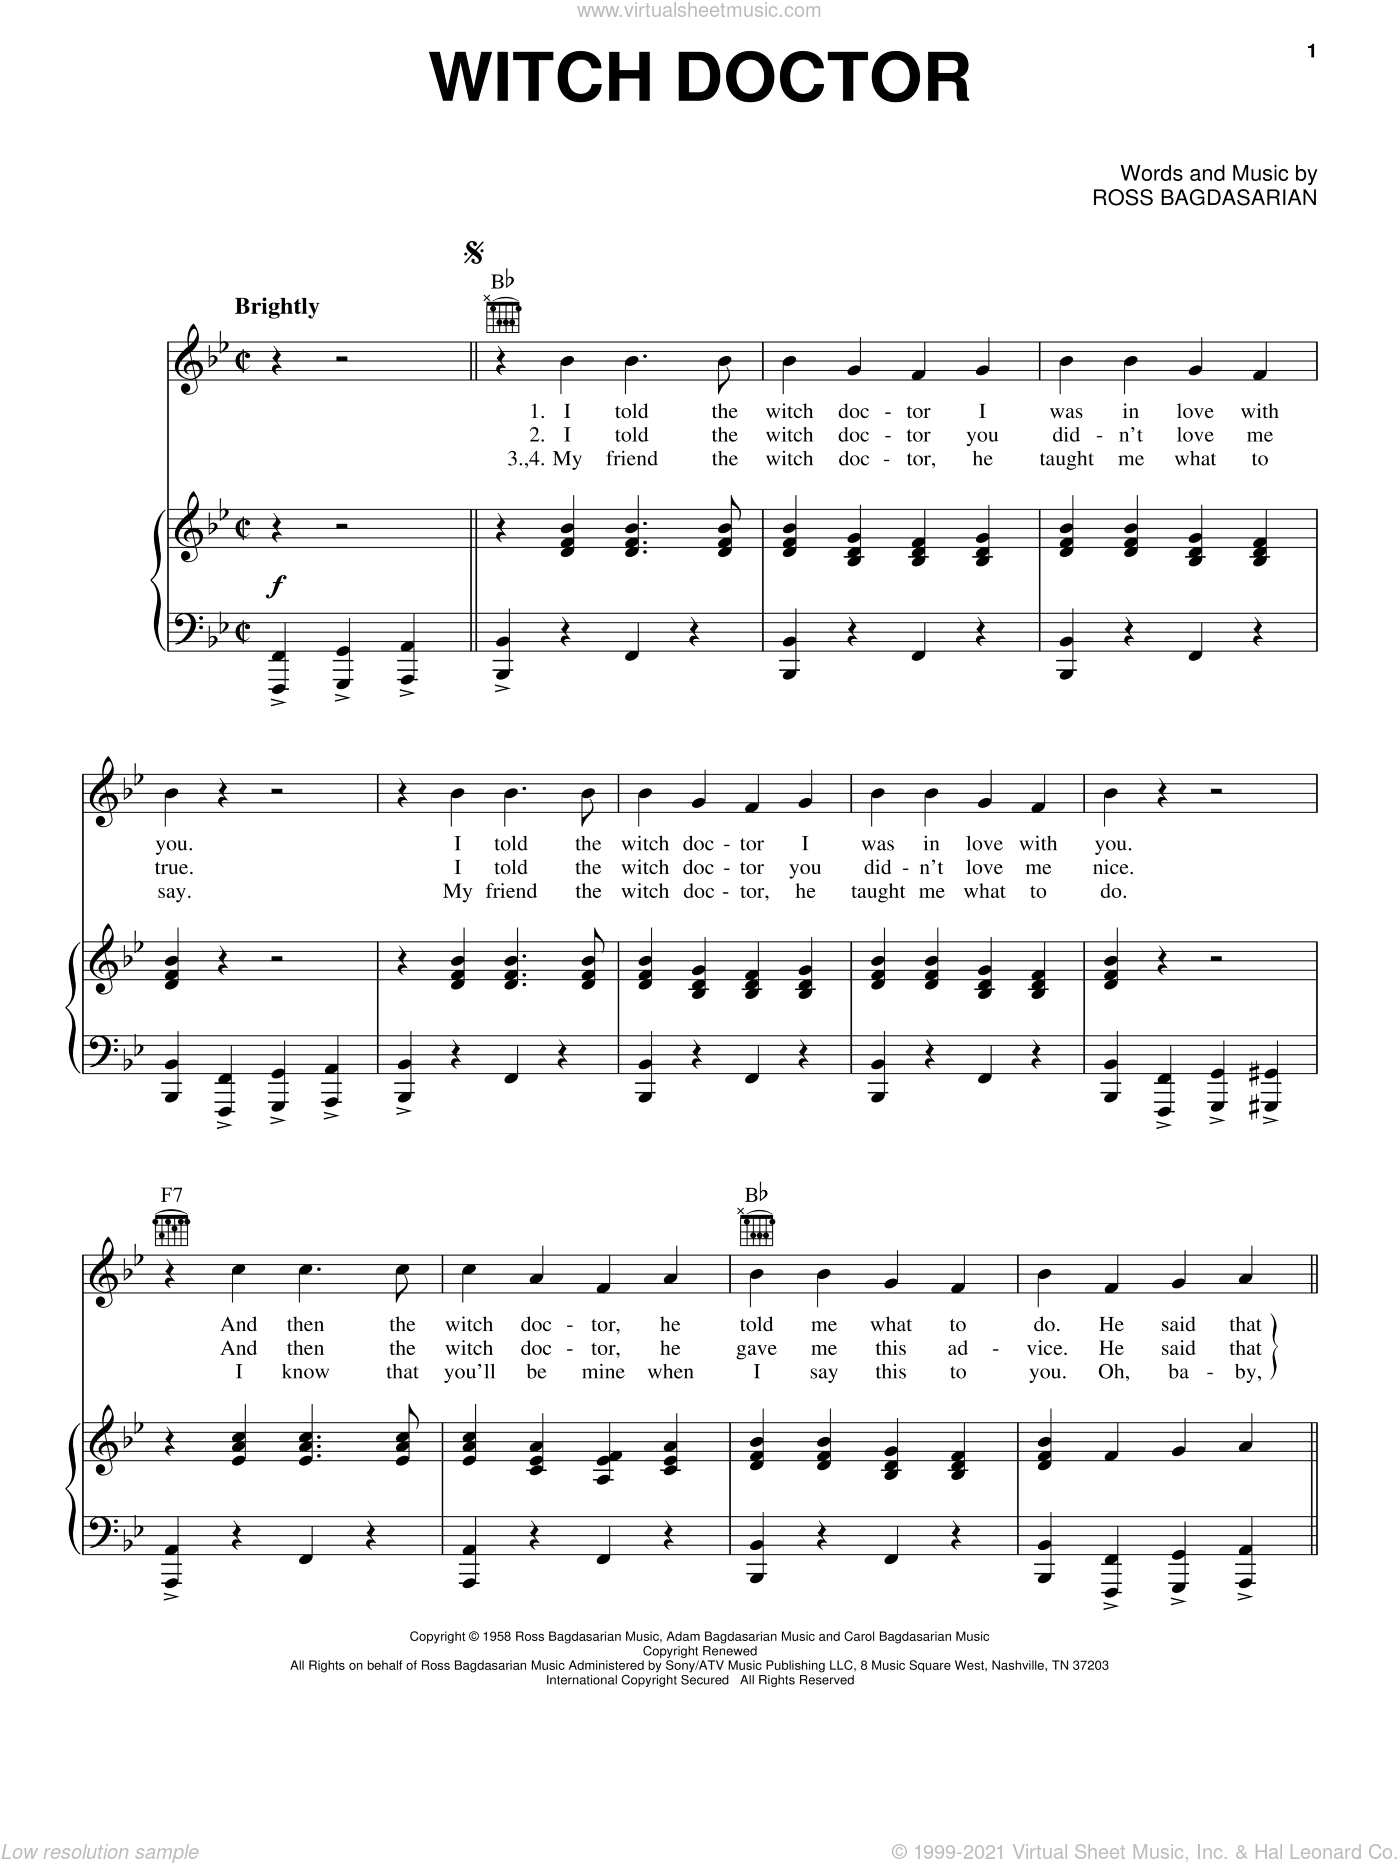 Chipmunks - Witch Doctor sheet music for voice, piano or guitar v2